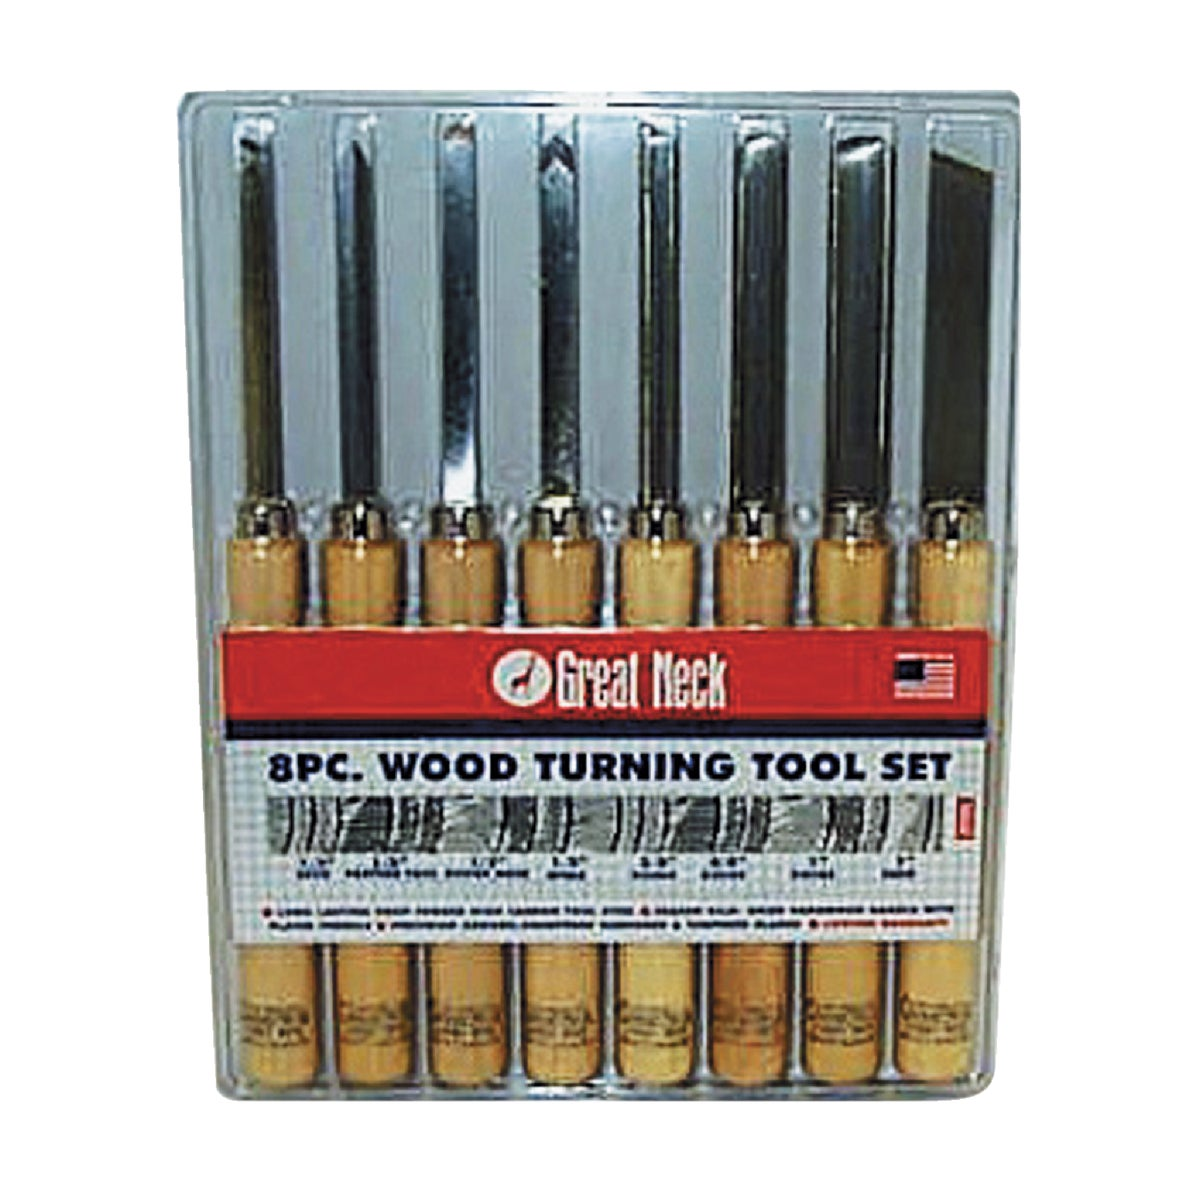 Great Neck WOOD TURNING TOOLS 800